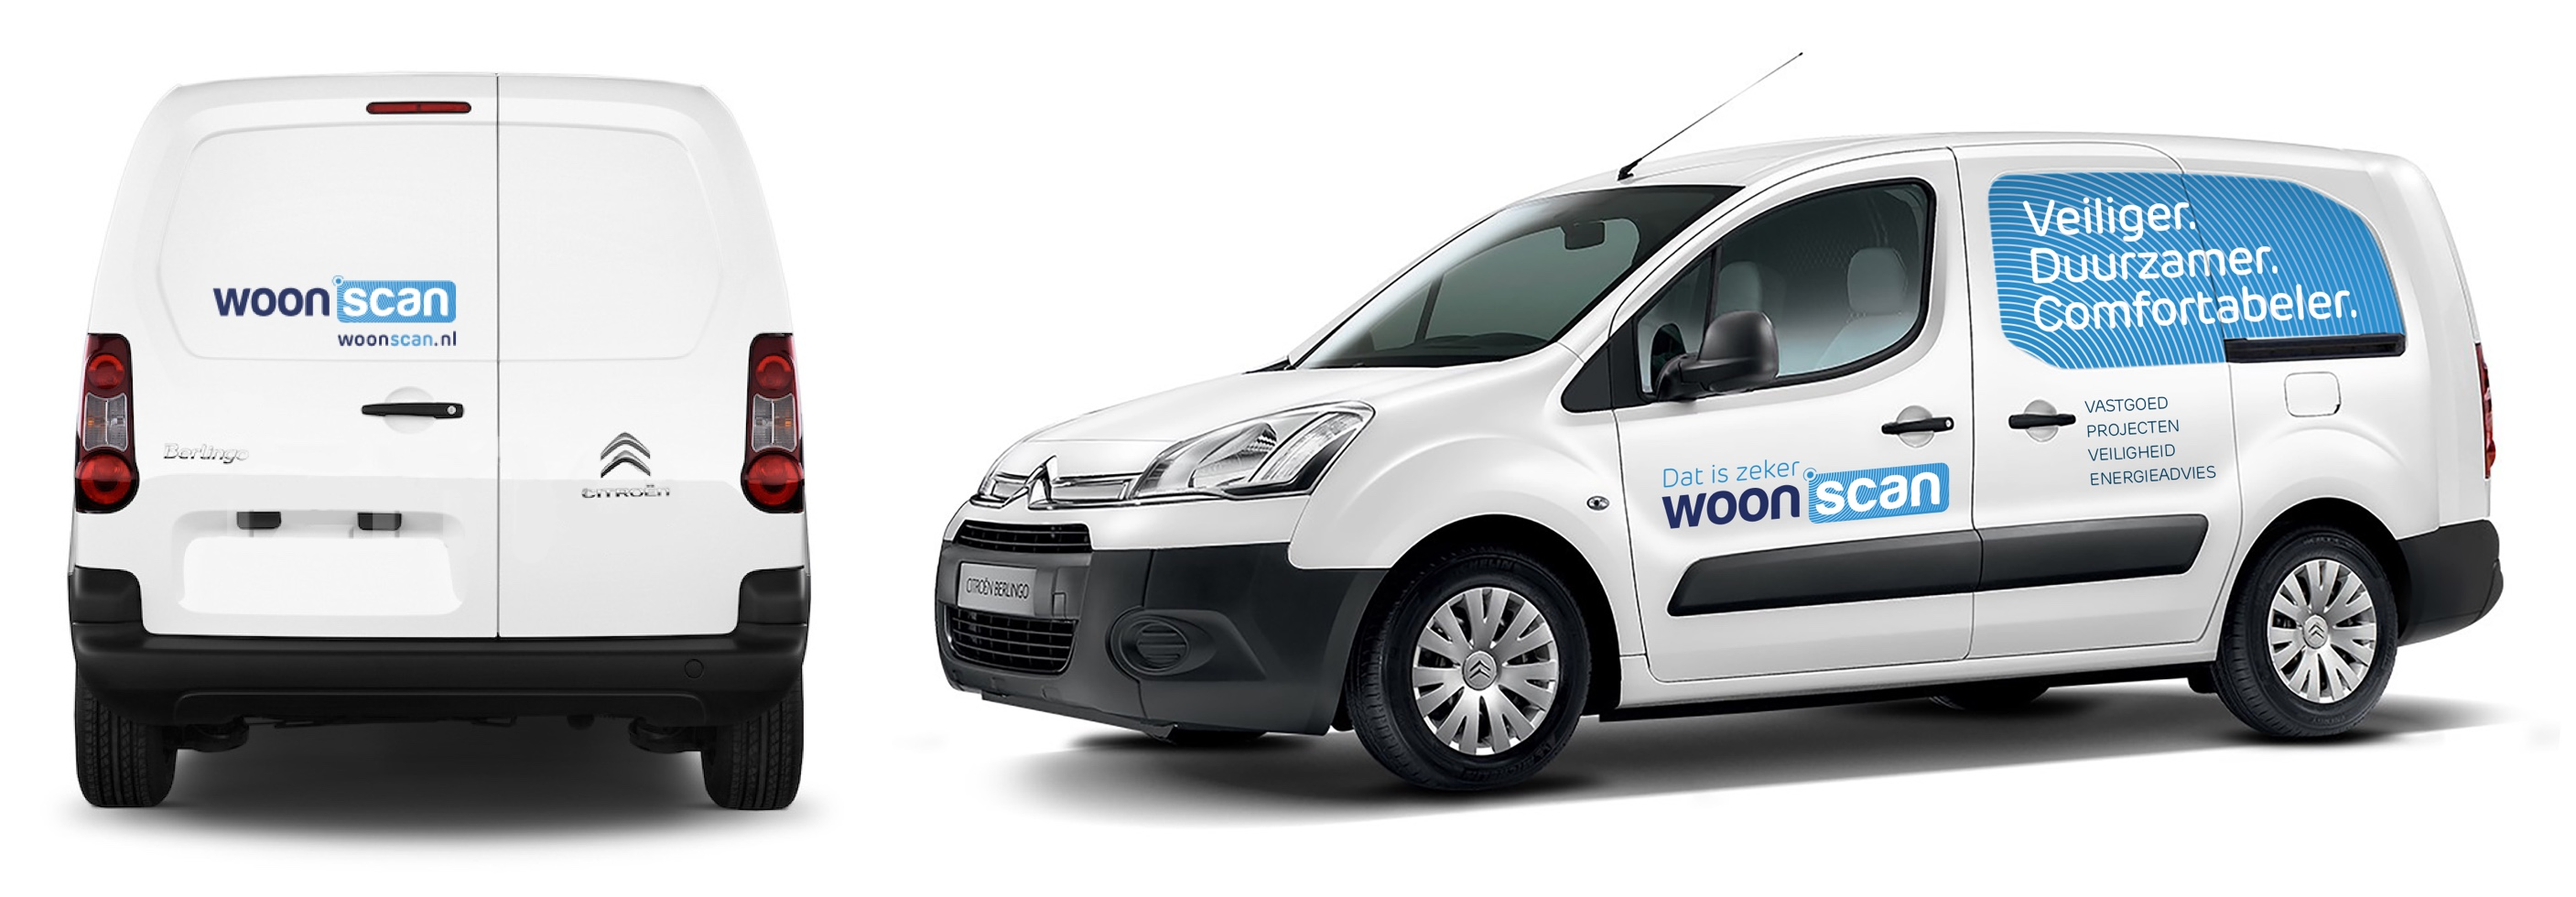 Woonscan - Auto belettering